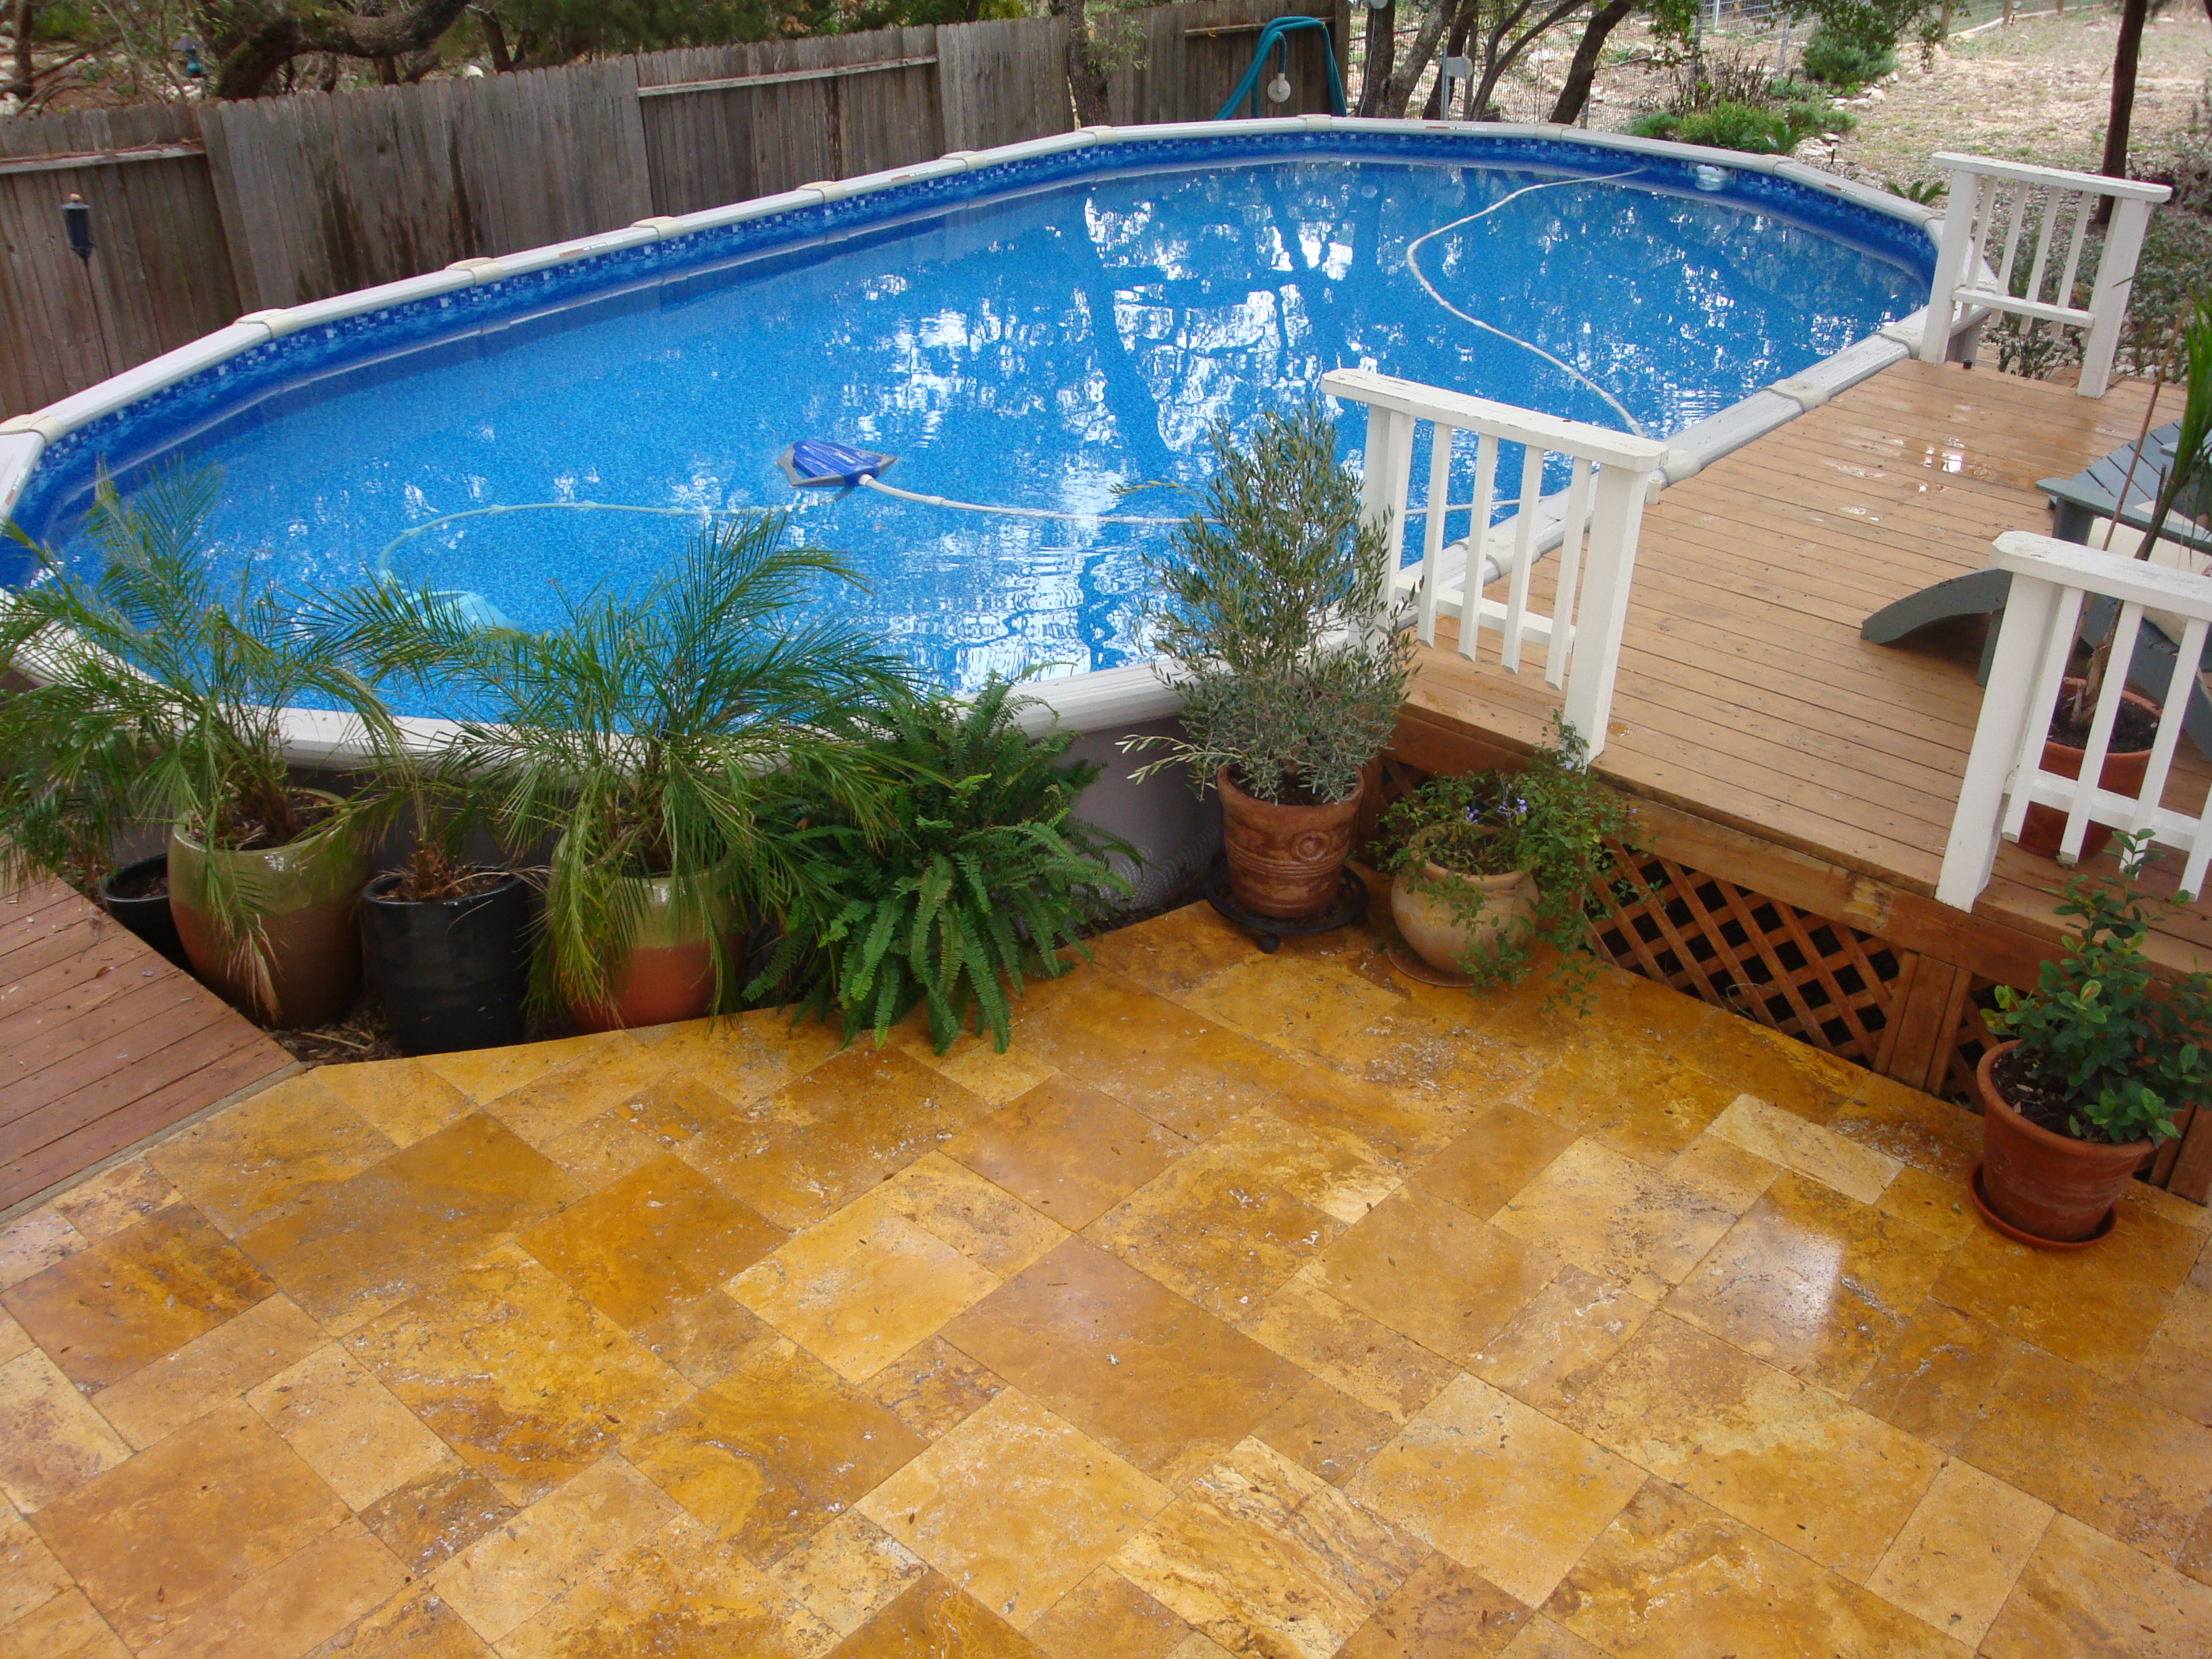 Backyard above ground pool ideas large and beautiful for Above ground pool designs